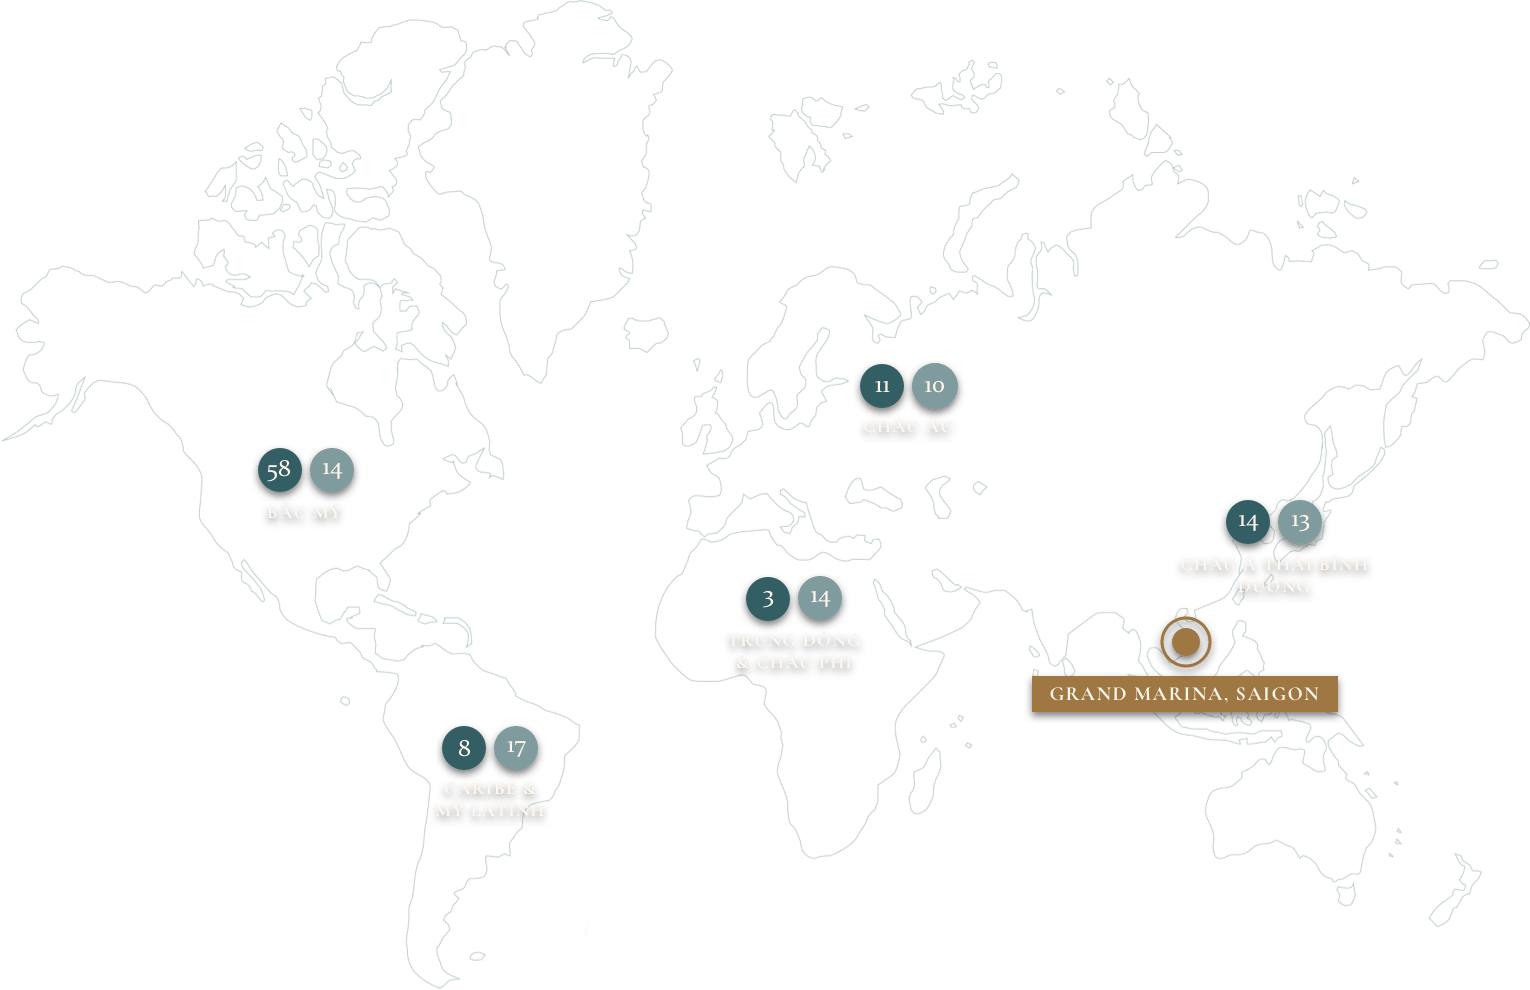 Global-Map-VN